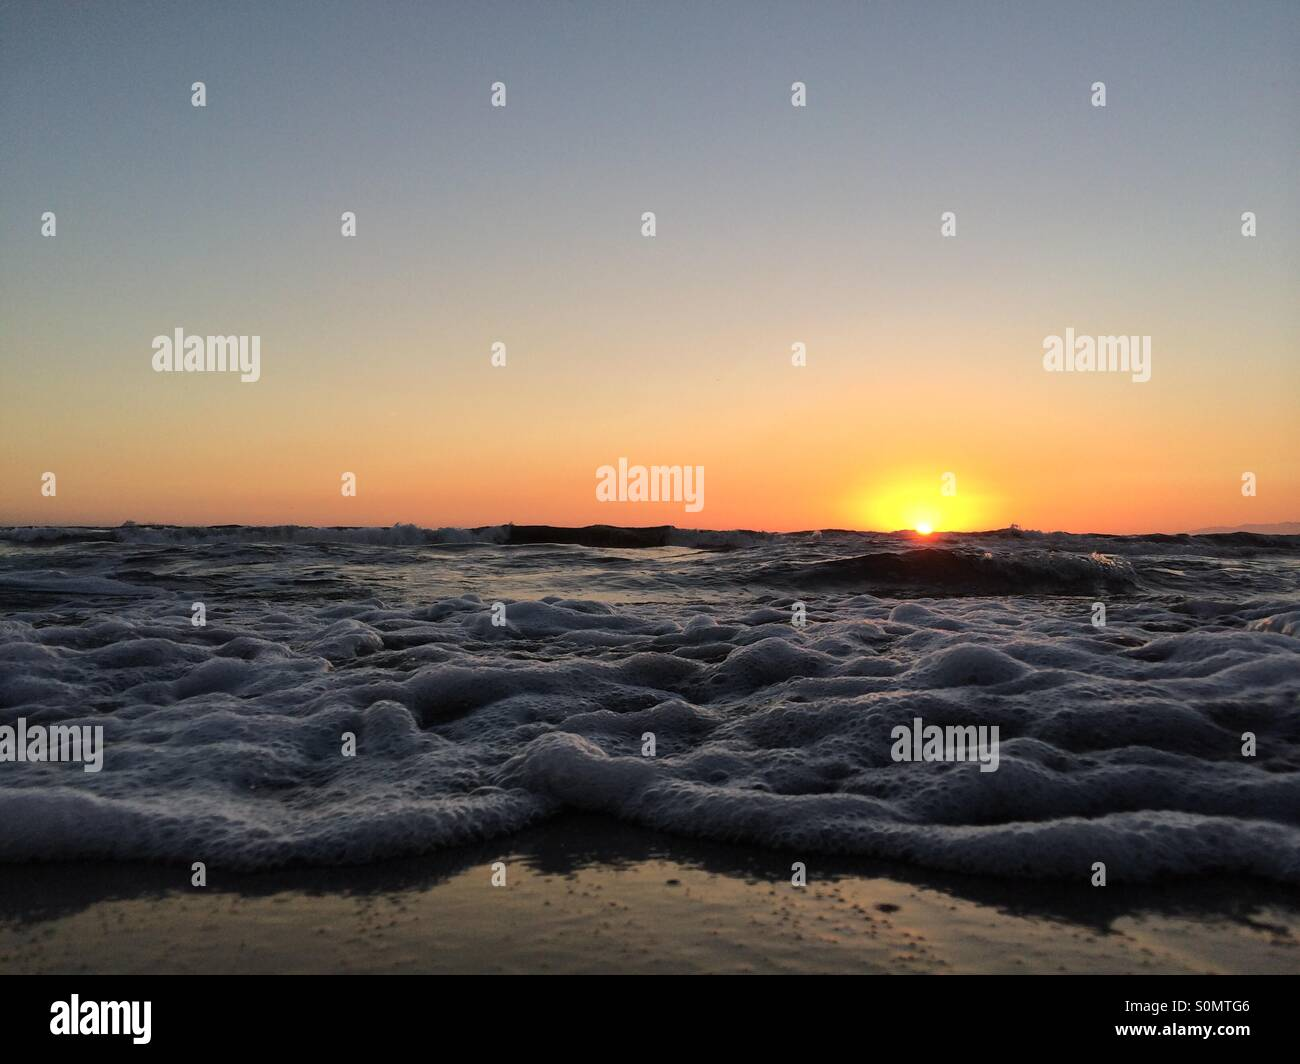 Suds at Dockweiler Beach - Stock Image